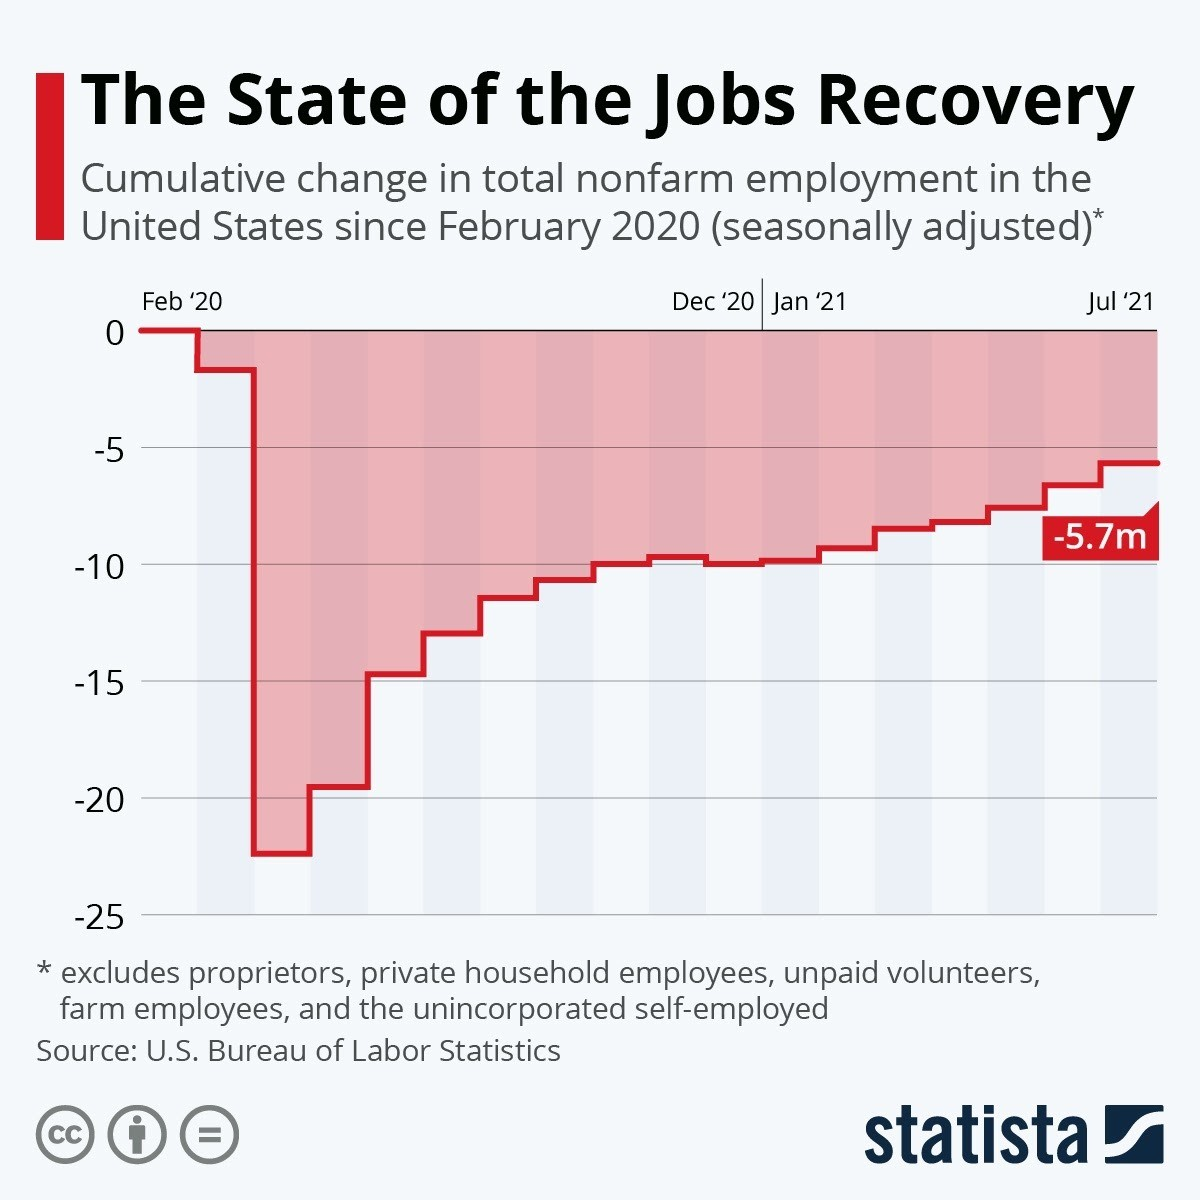 this chart shows the state of the jobs recovery